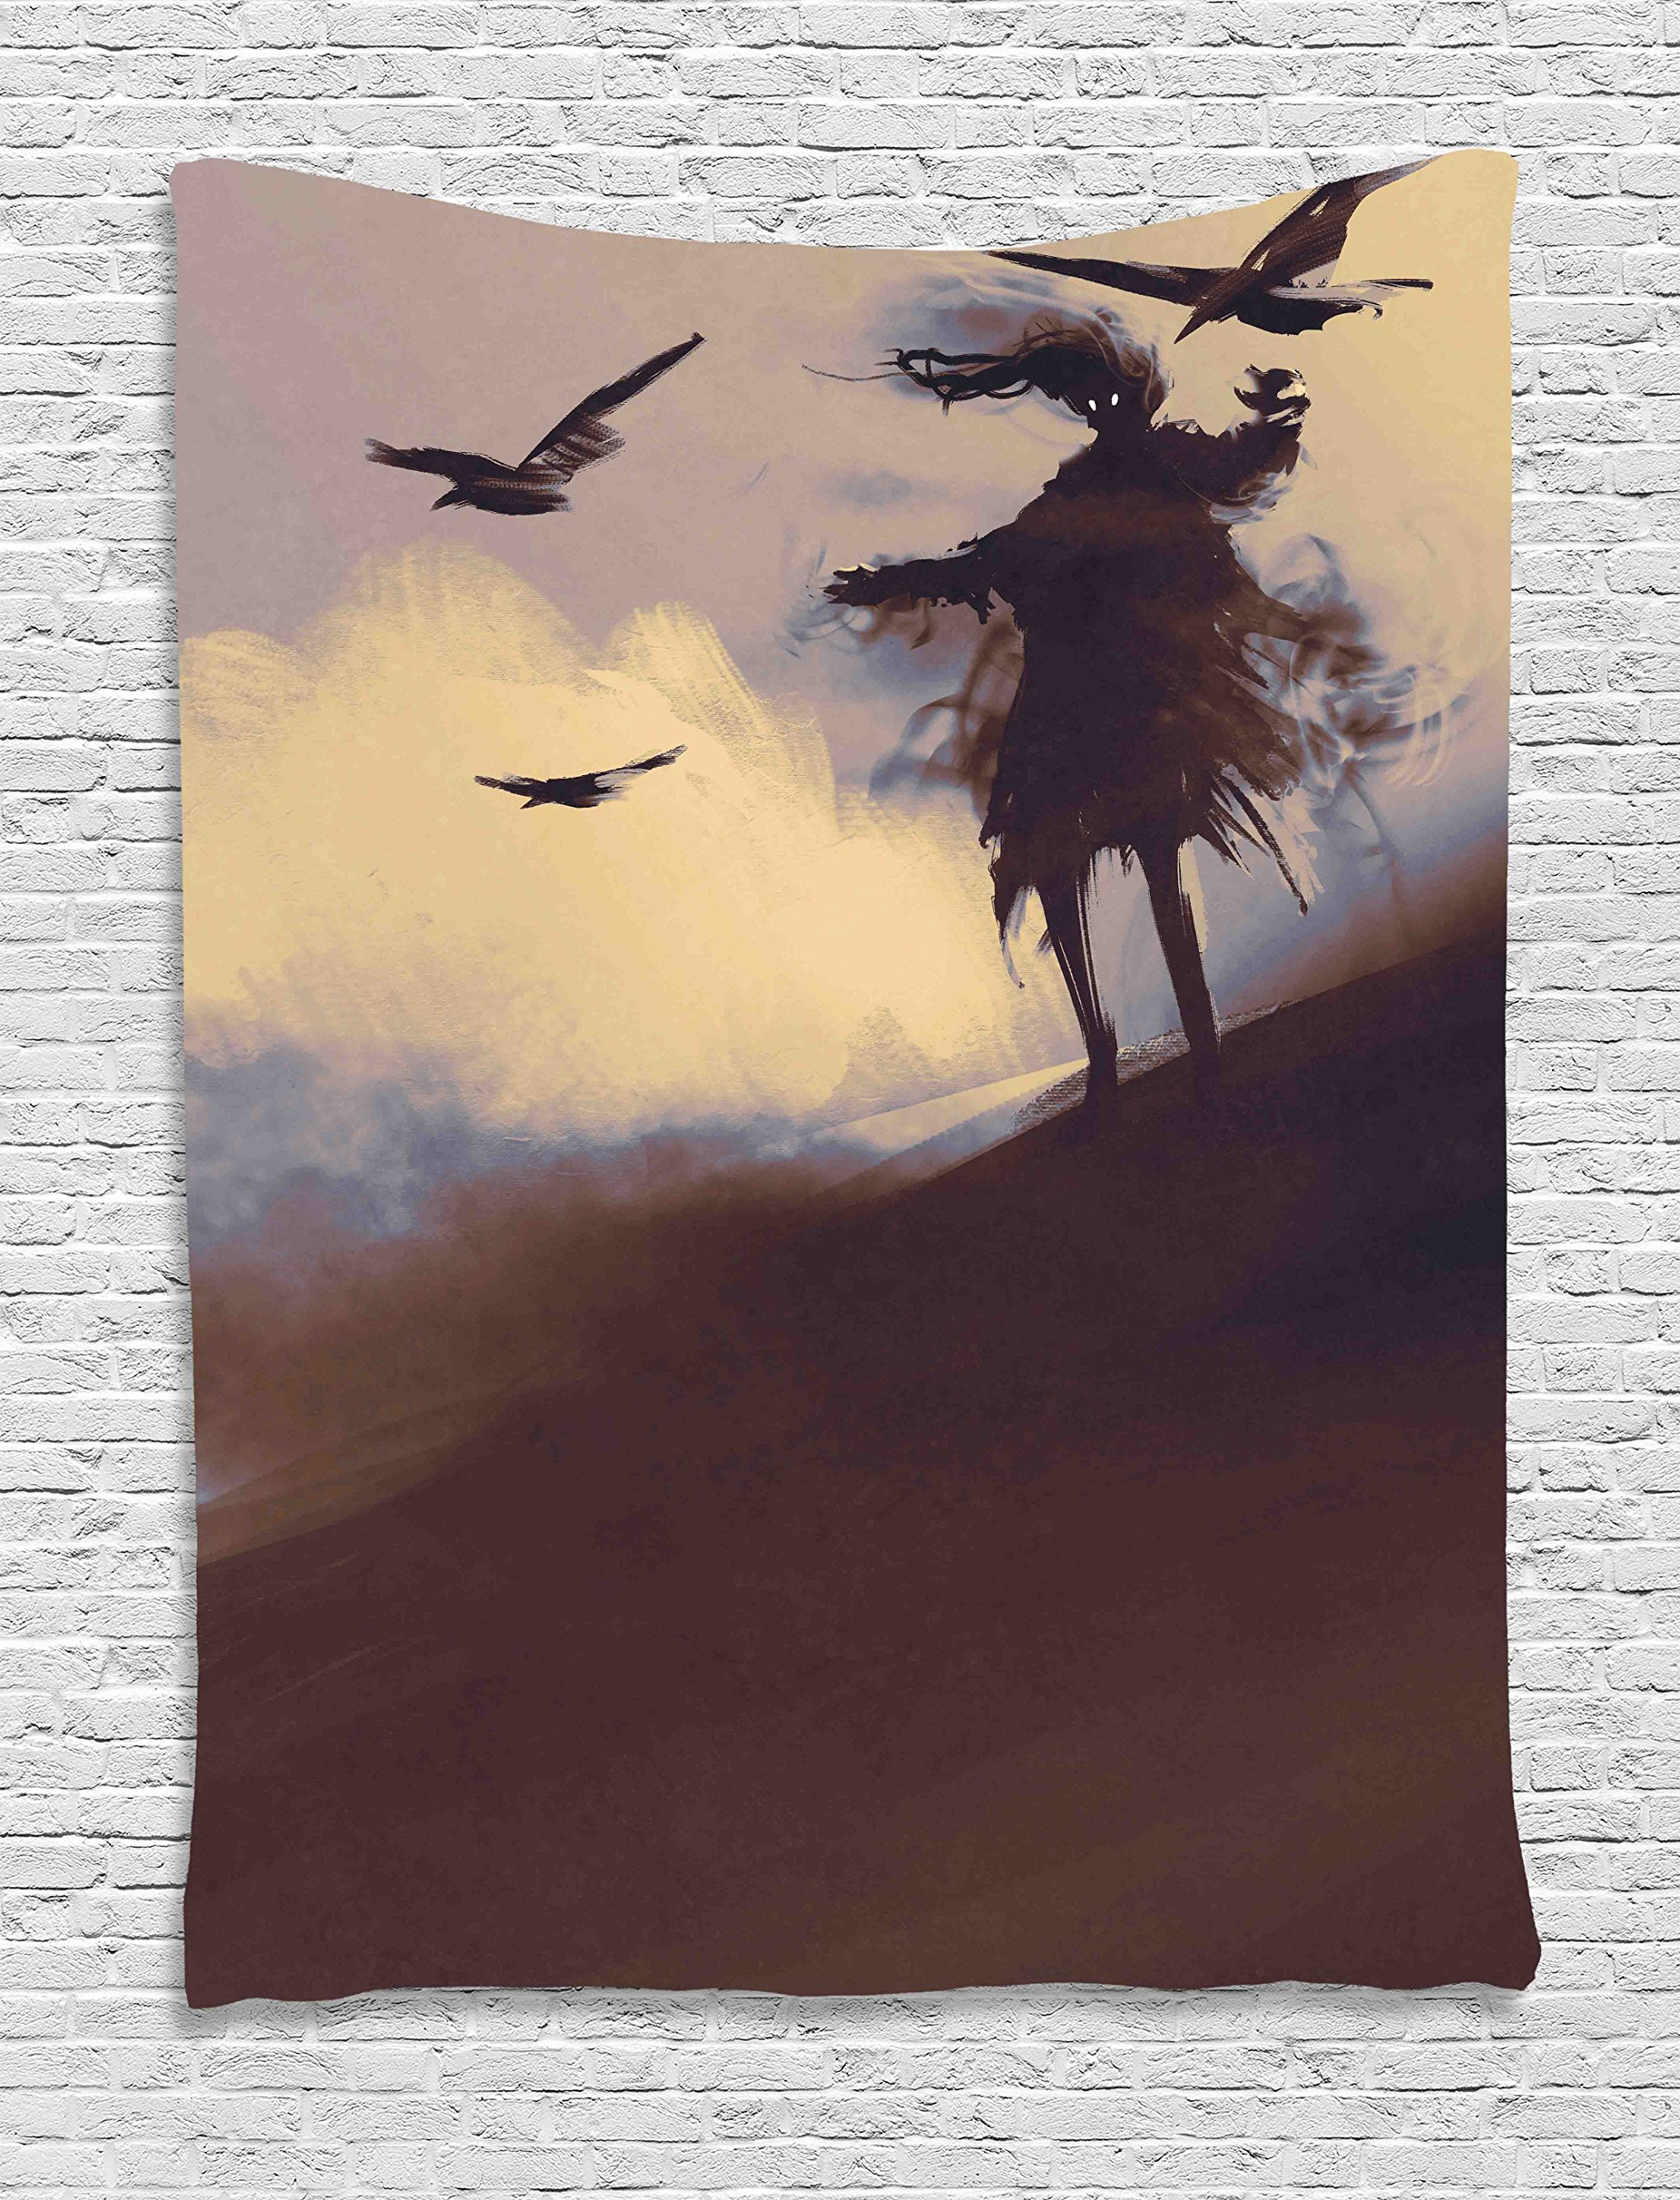 Ambesonne Horror Tapestry, Dark Soul from a Scary Movie on The Hills with Clouds and Flying Crows Print, Wall Hanging for Bedroom Living Room Dorm, 40 W X 60 L inches, Brown Mauve Begie